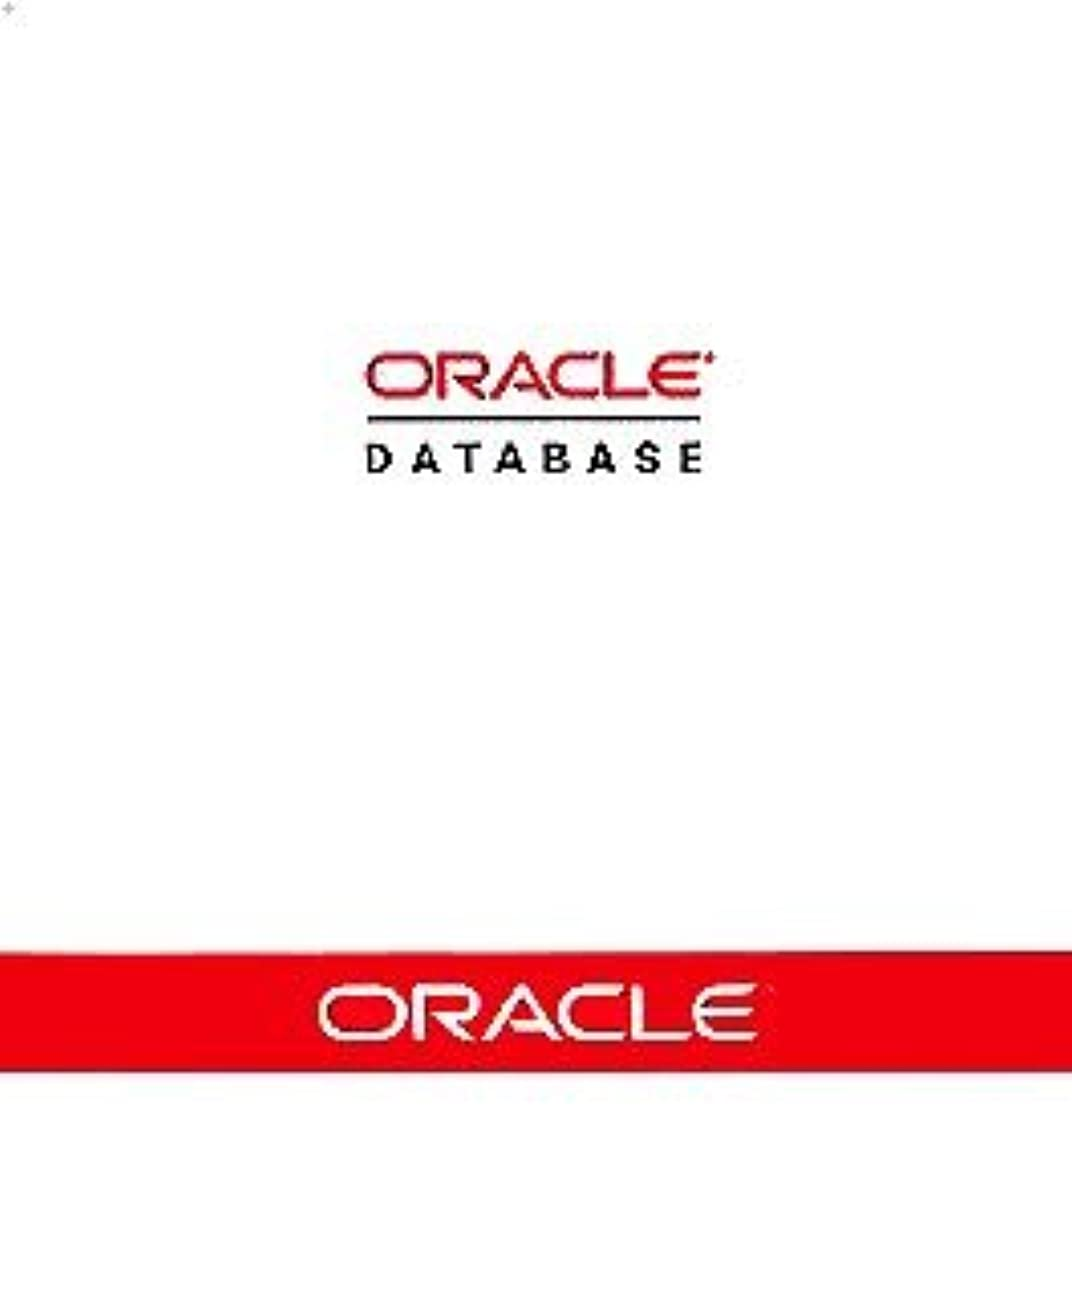 願う踊り子苦悩Oracle Database Standard Edition for Linux x86 (5 Named User Plus) (Oracle9i Database R2 (9.2.0) Standard Edition for Linux x86) DP v17